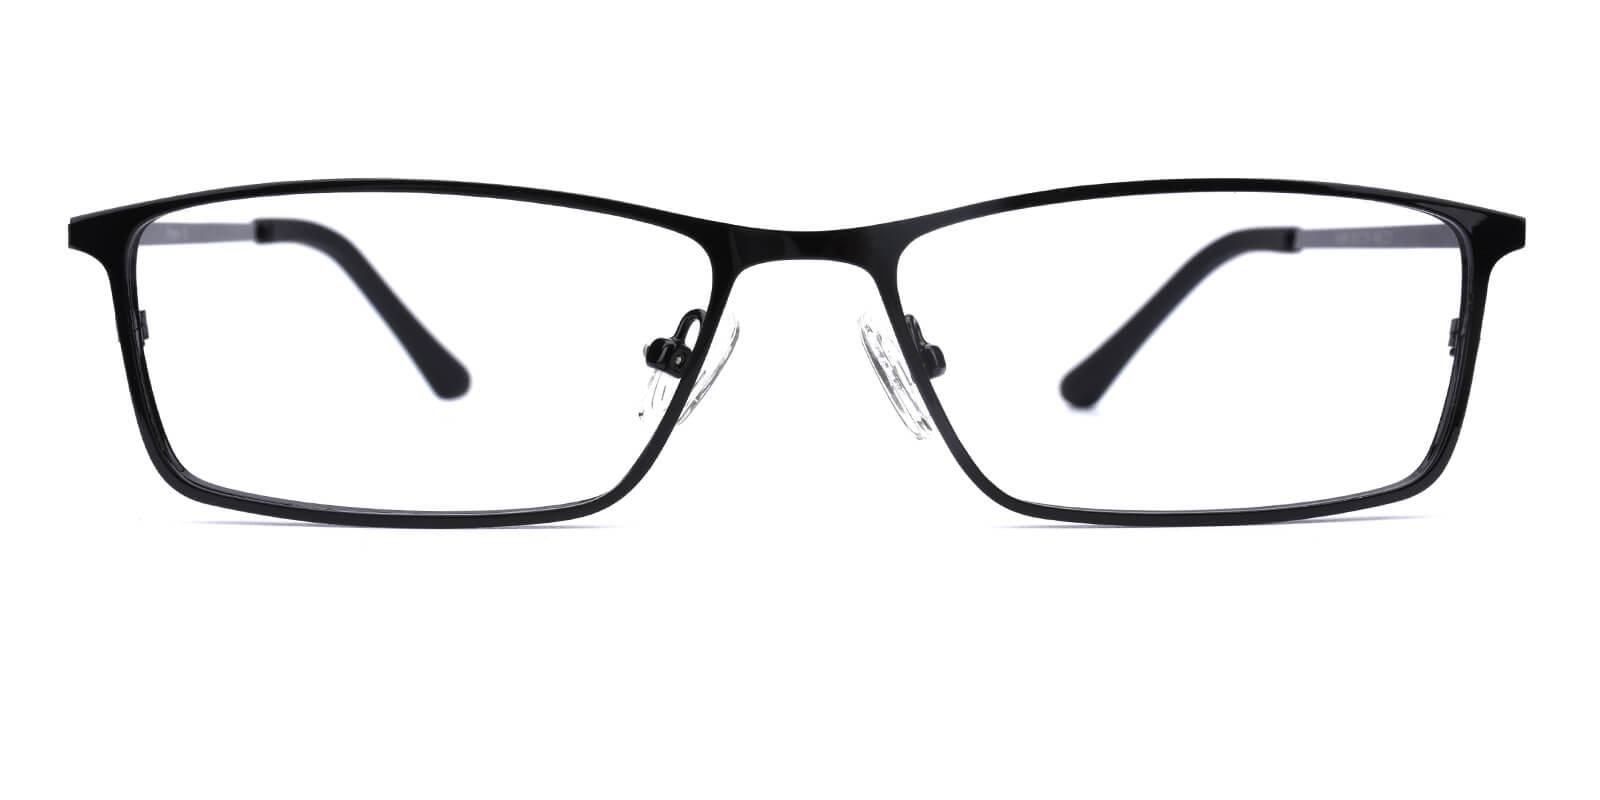 Wildfire-Black-Rectangle-Metal-Eyeglasses-additional2